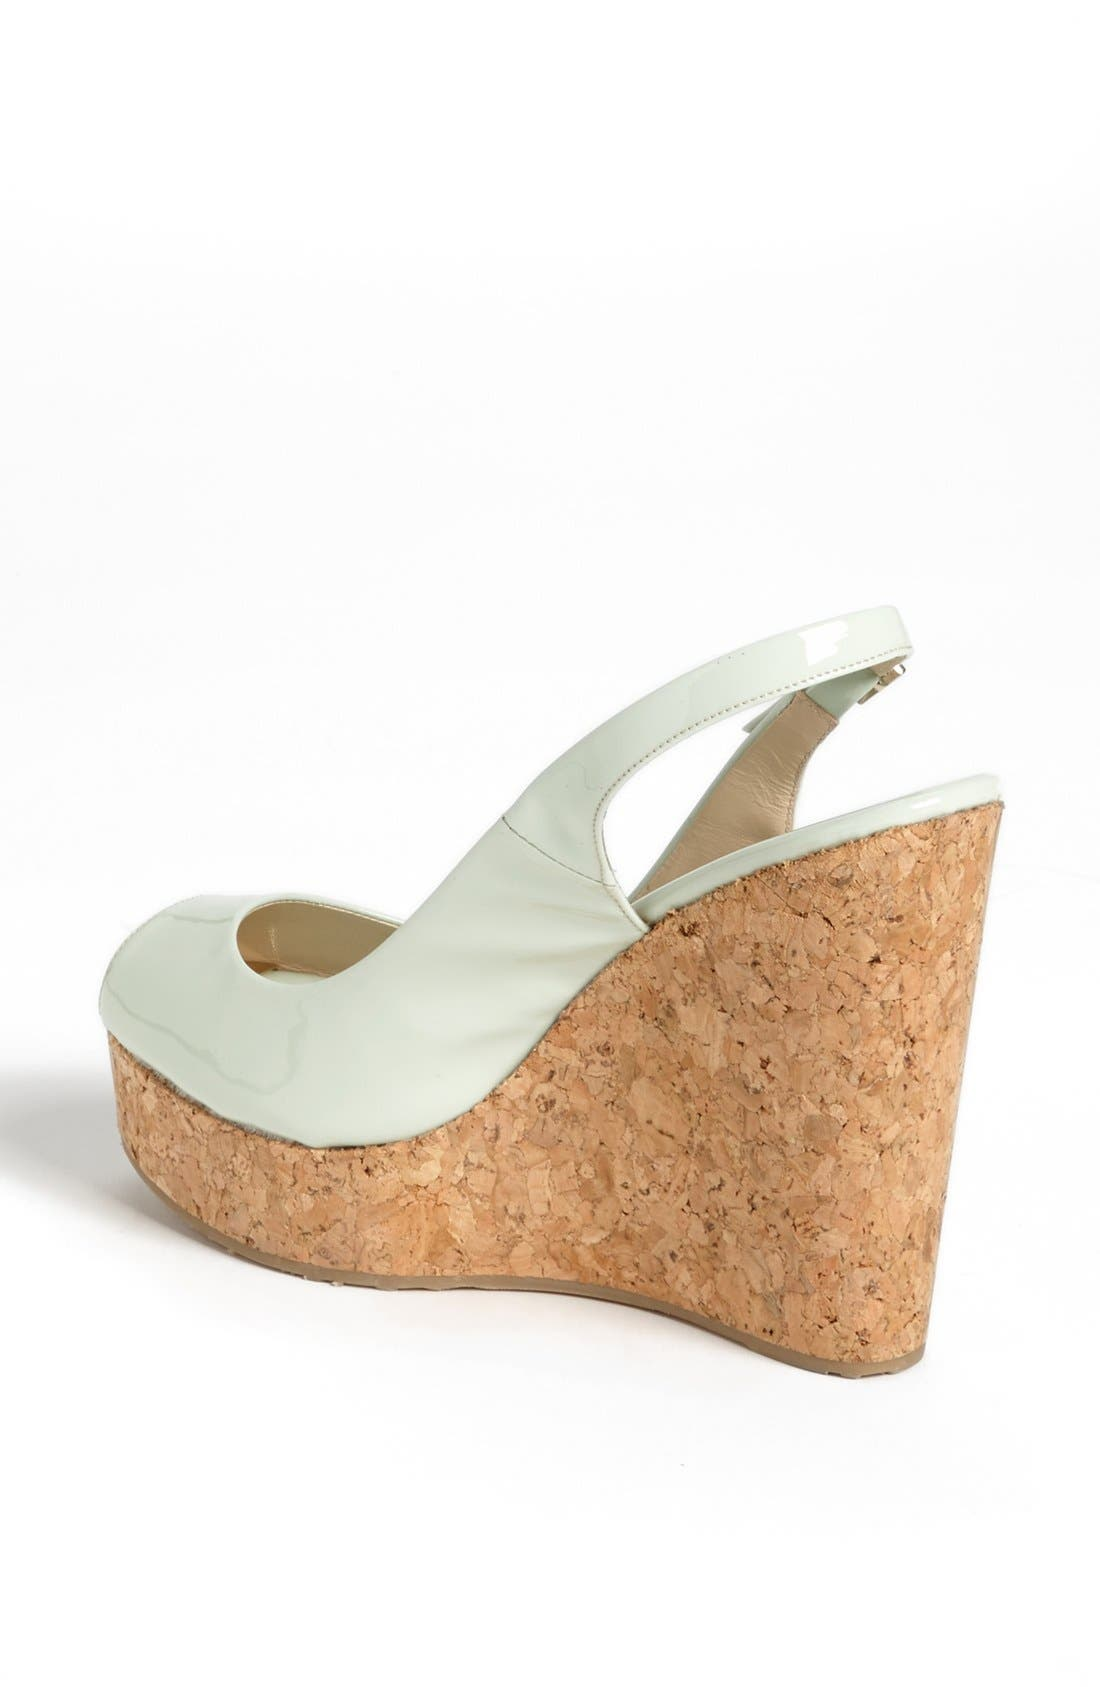 Alternate Image 2  - Jimmy Choo 'Prova' Cork Slingback Wedge Sandal